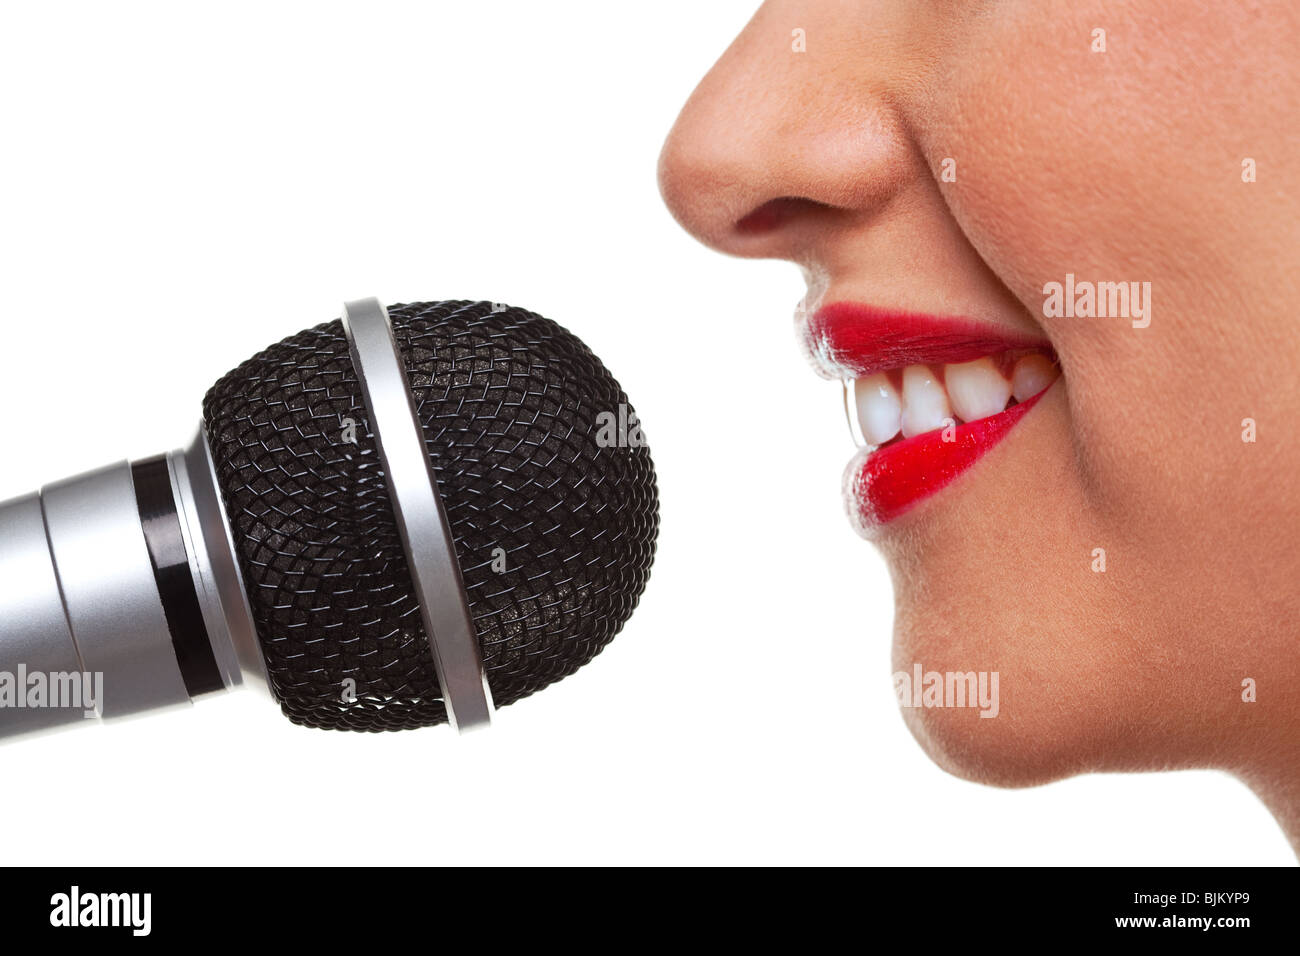 Close up of a woman using a microphone, isolated on a white background. - Stock Image